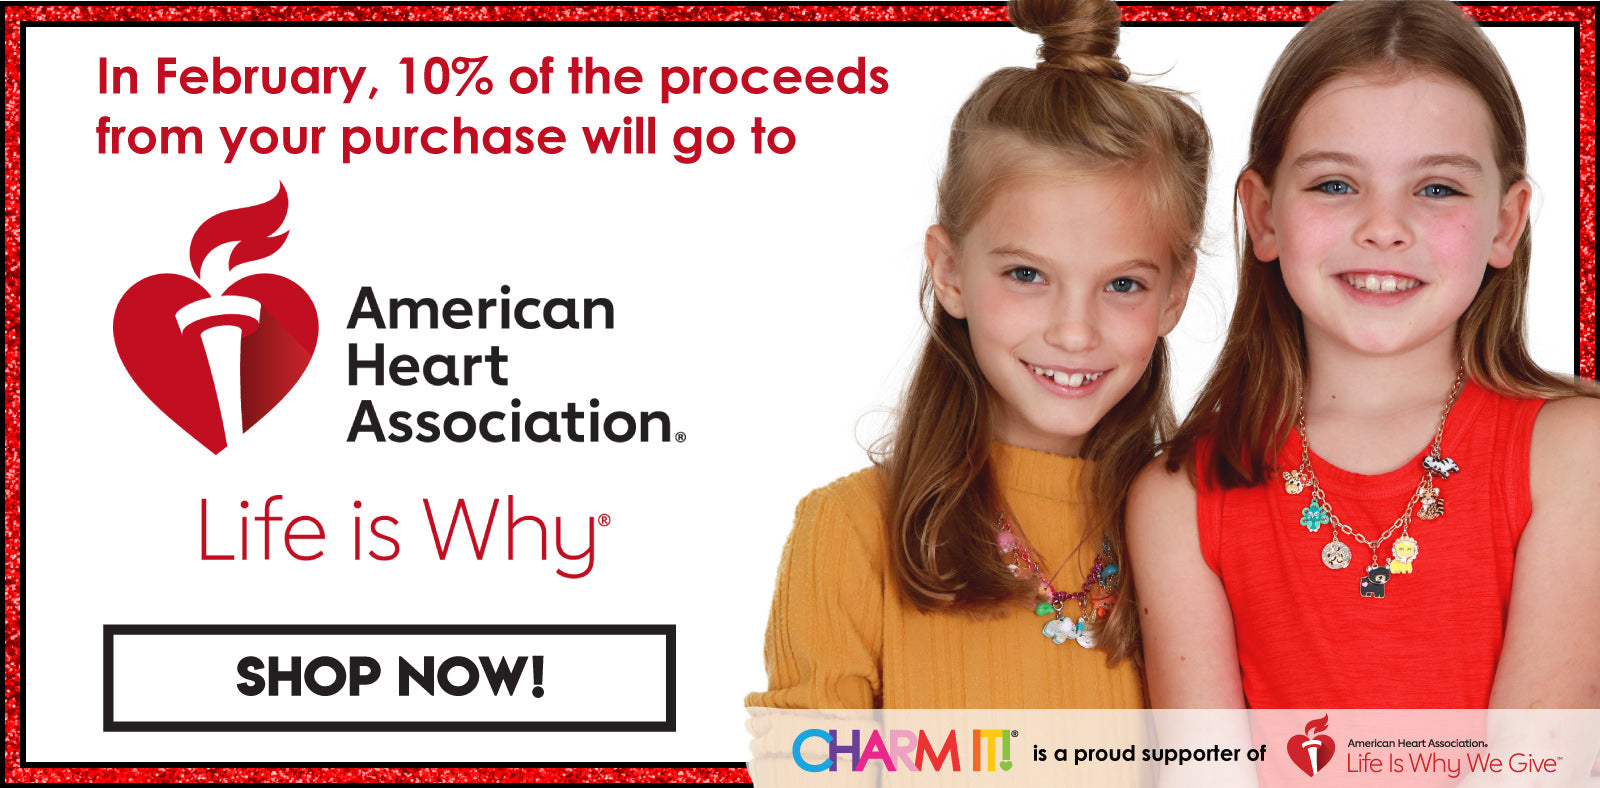 In February, 10% of the proceeds from all purchases will go to the American Heart Association. CHARM IT! is a proud supporter of American Heart Association. Life is Why®